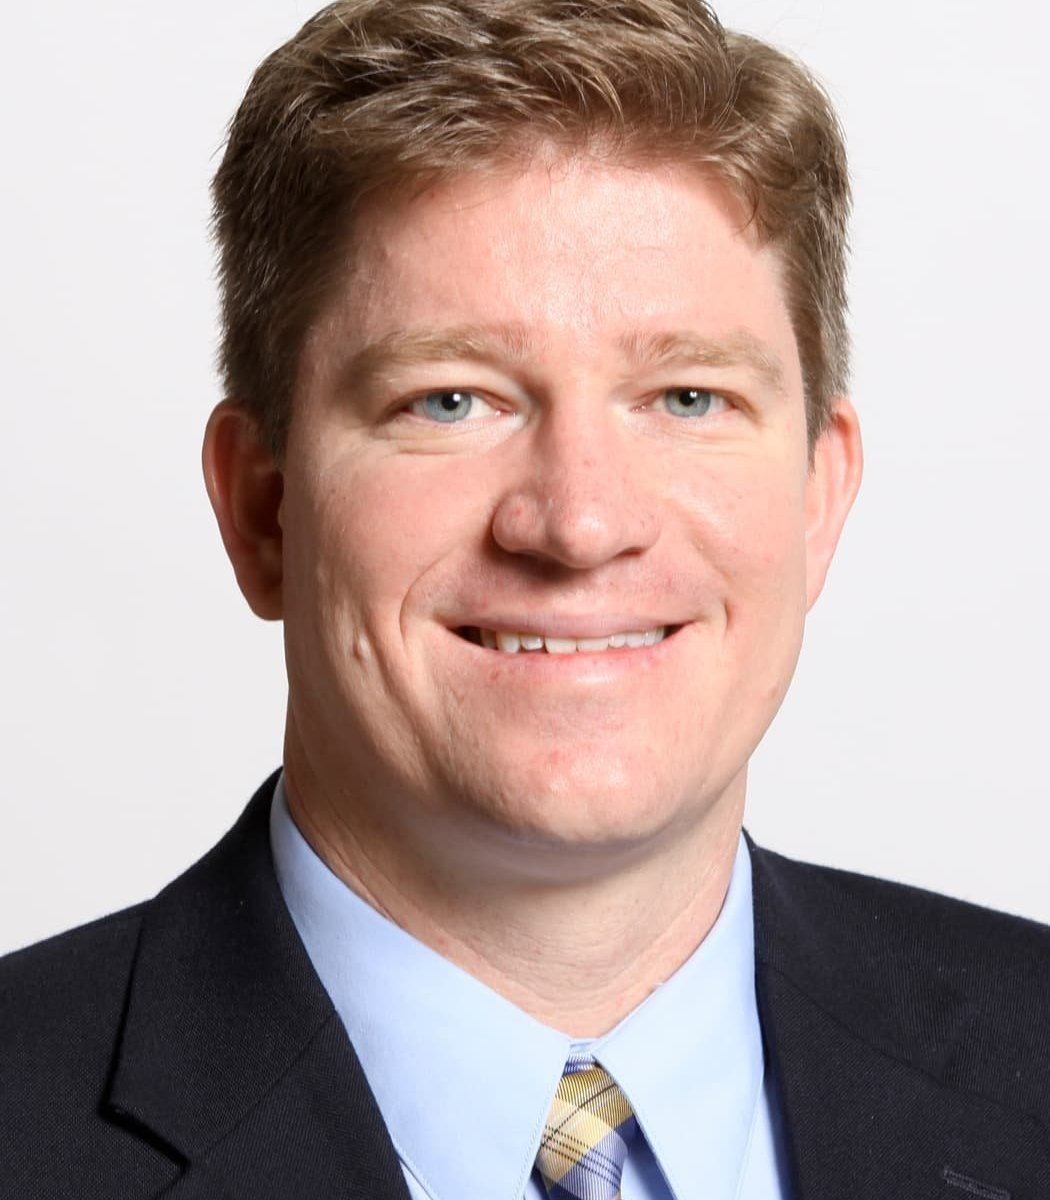 Keith Erekson wearing a suit and tie